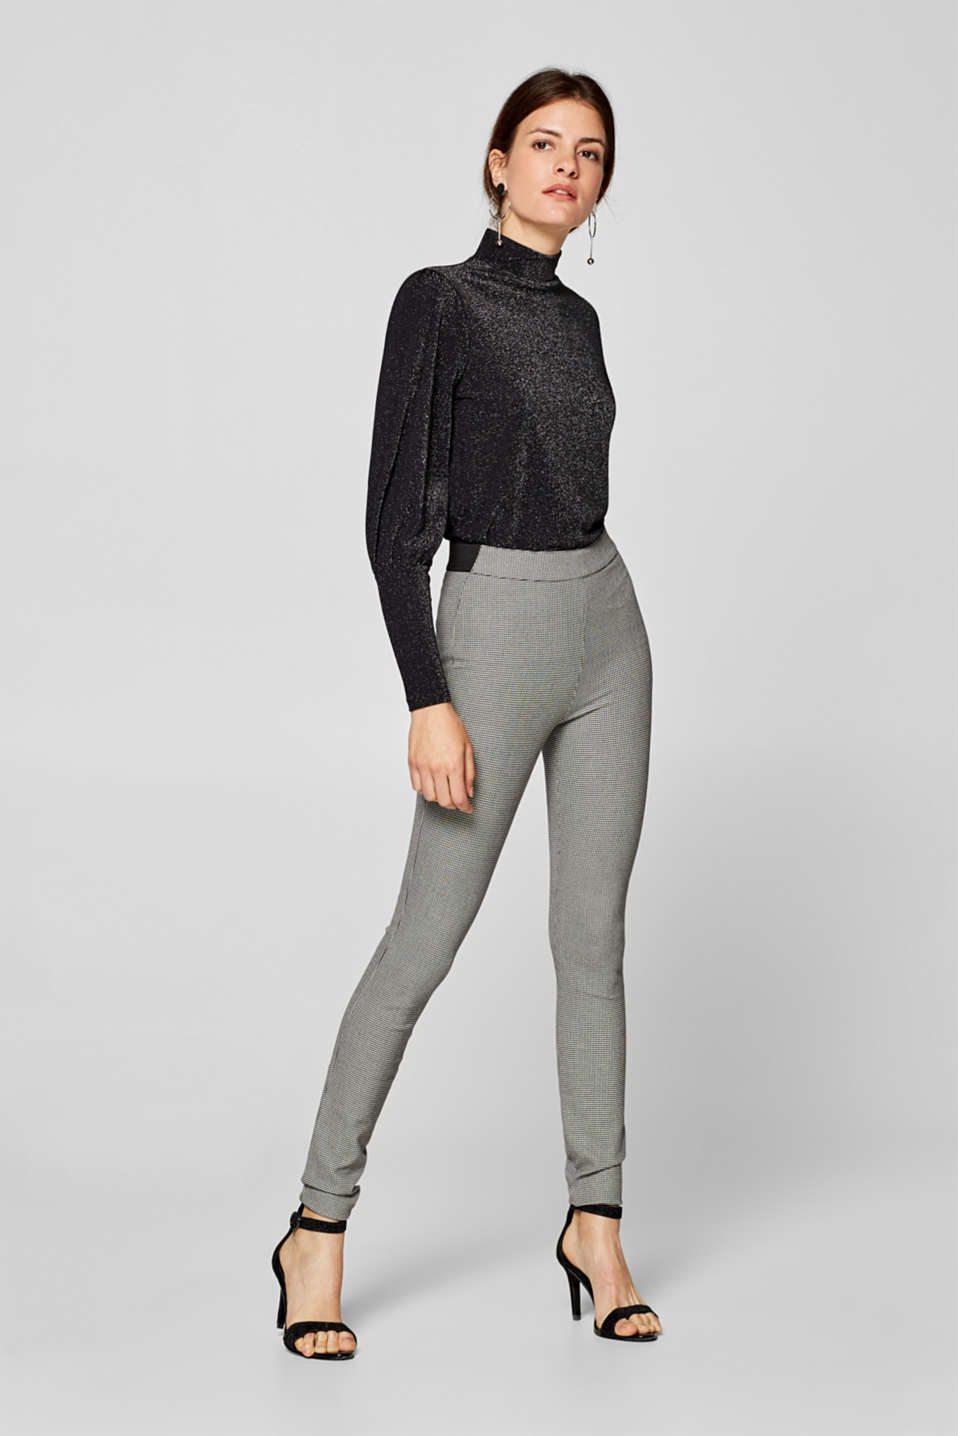 Esprit - Stretch houndstooth trousers with an elasticated waistband